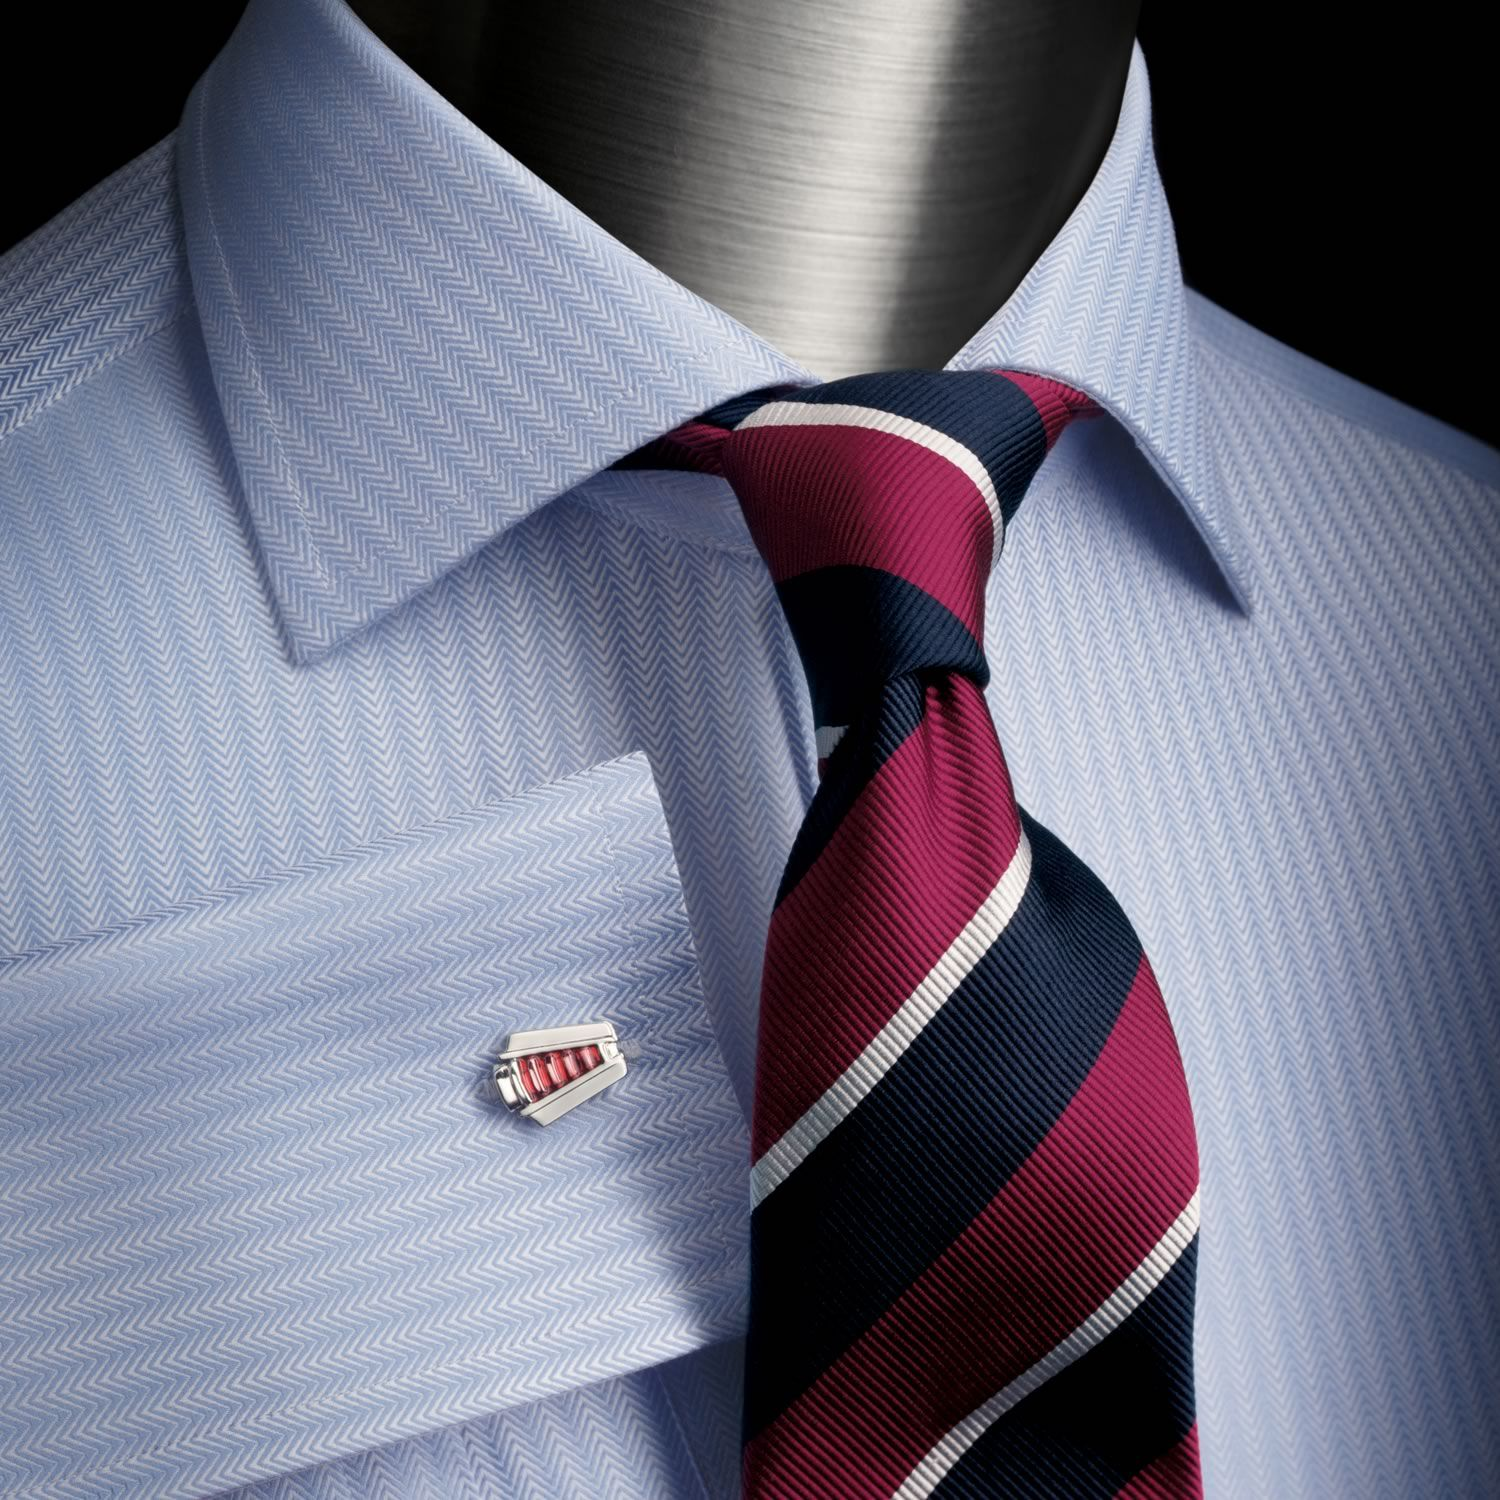 Herringbone Dress Shirt | Charles Tyrwhitt Black Label ...